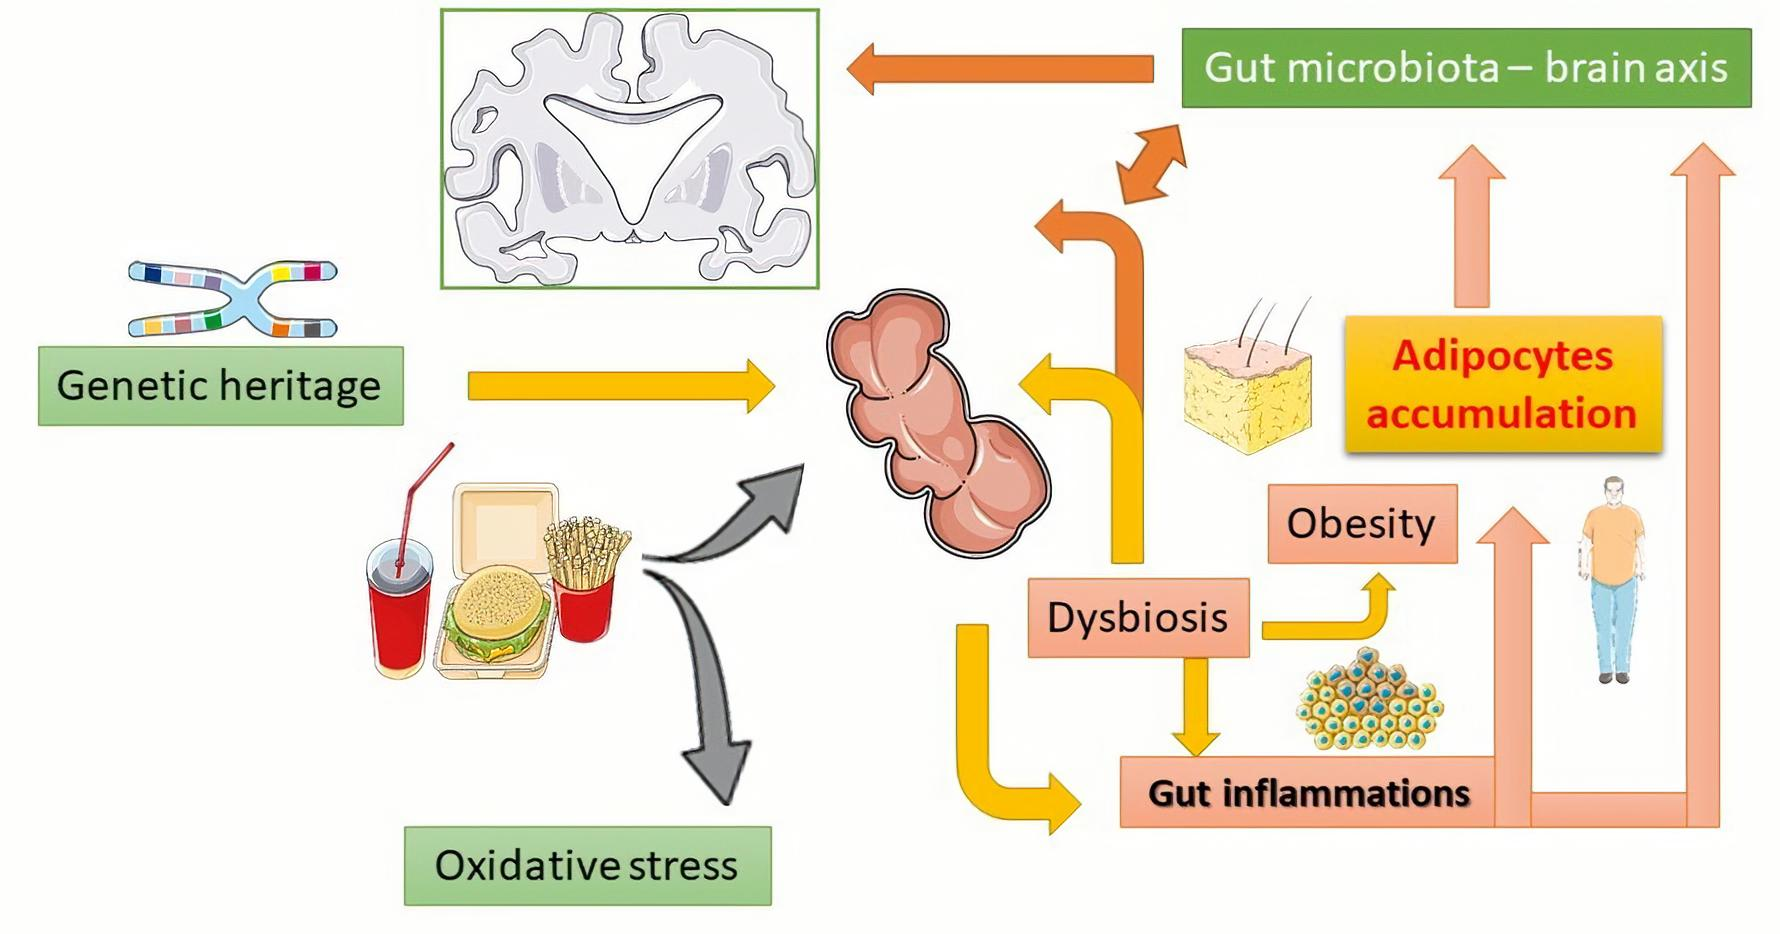 Dysbiosis stress. Dysbiosis of gut microbiota, Warts on hands only